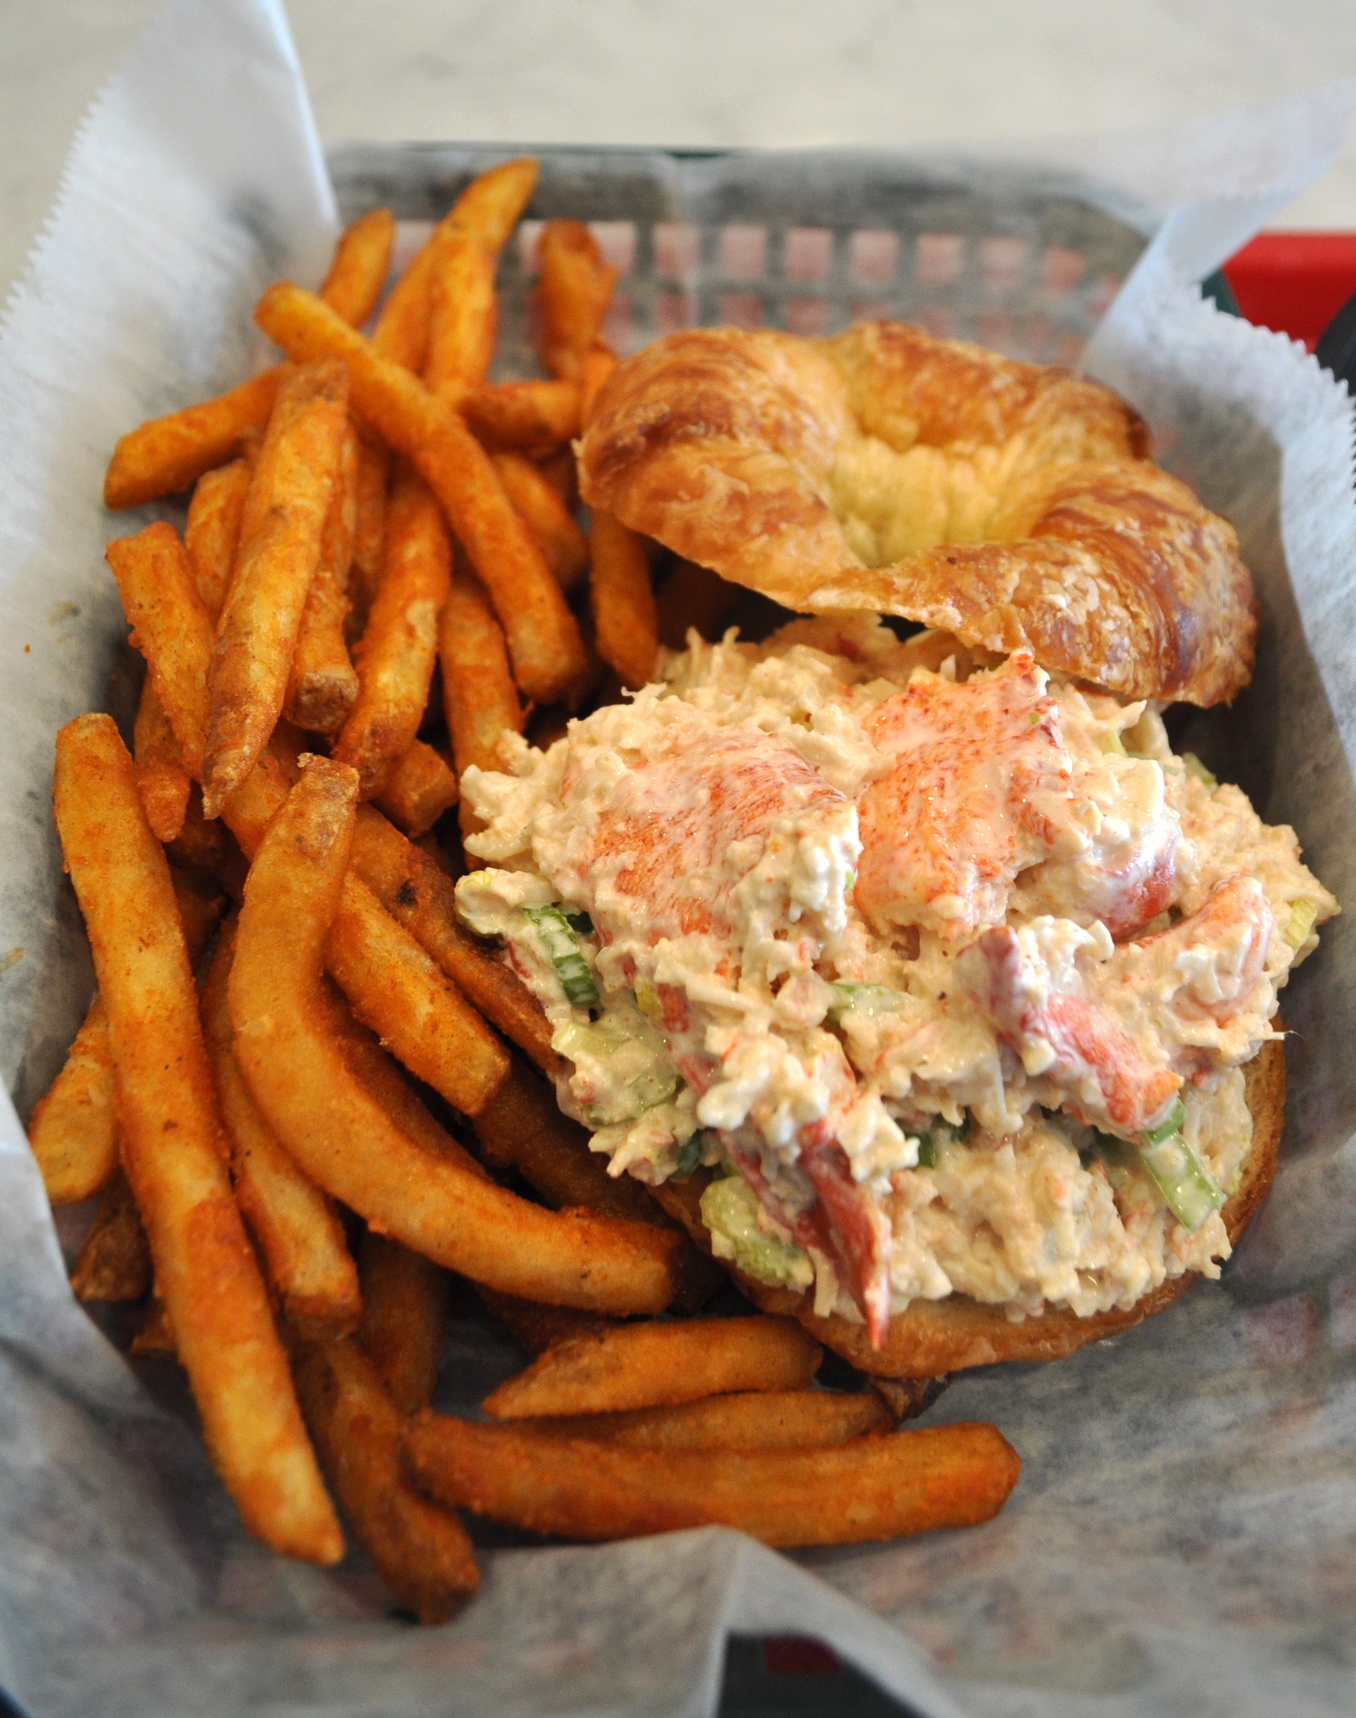 The Lobster Croissant Sandwich ($18) at Jeff's Surf and Turf -- big chunks of premium lobster meat stuffed into a flaky, buttery croissant – is a decadent delight. (Jeff's Surf and Turf, 217 New York Ave., Huntington, 631-423-6300)     Long Islander News photo/ Danny Schrafel